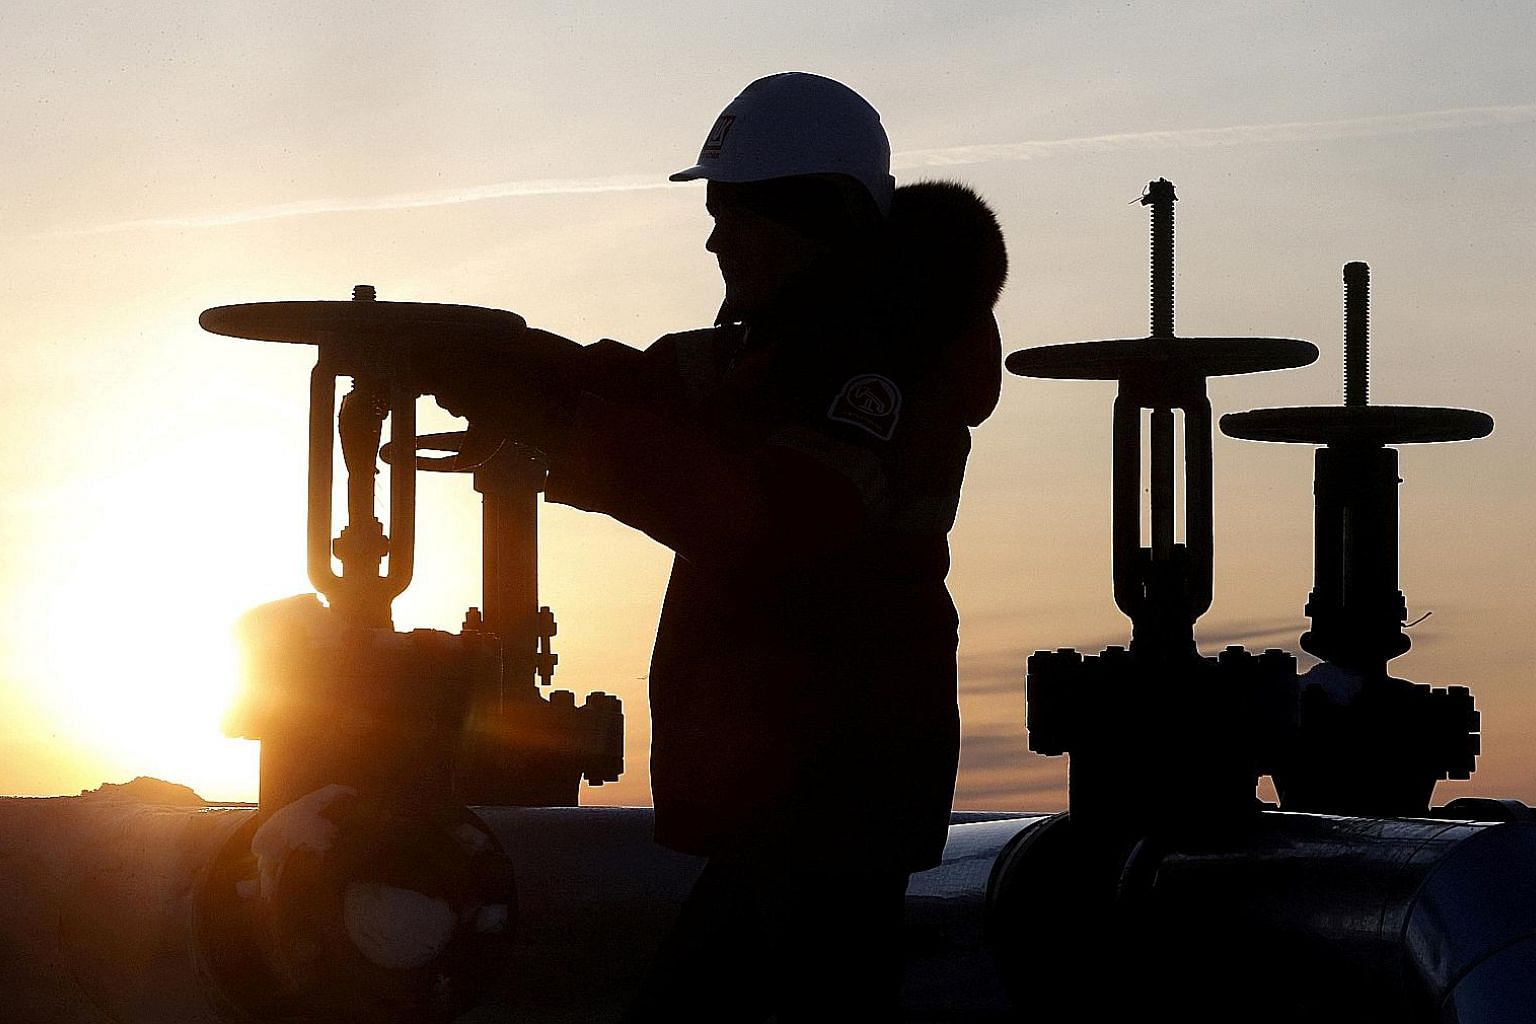 An oil pipeline owned by Russian company Lukoil near Kogalym in Russia. Opec, of which Saudi Arabia is the de facto leader, and other producers, led by Russia, pledged last year to cut output by 1.8 million barrels per day during the first half of th